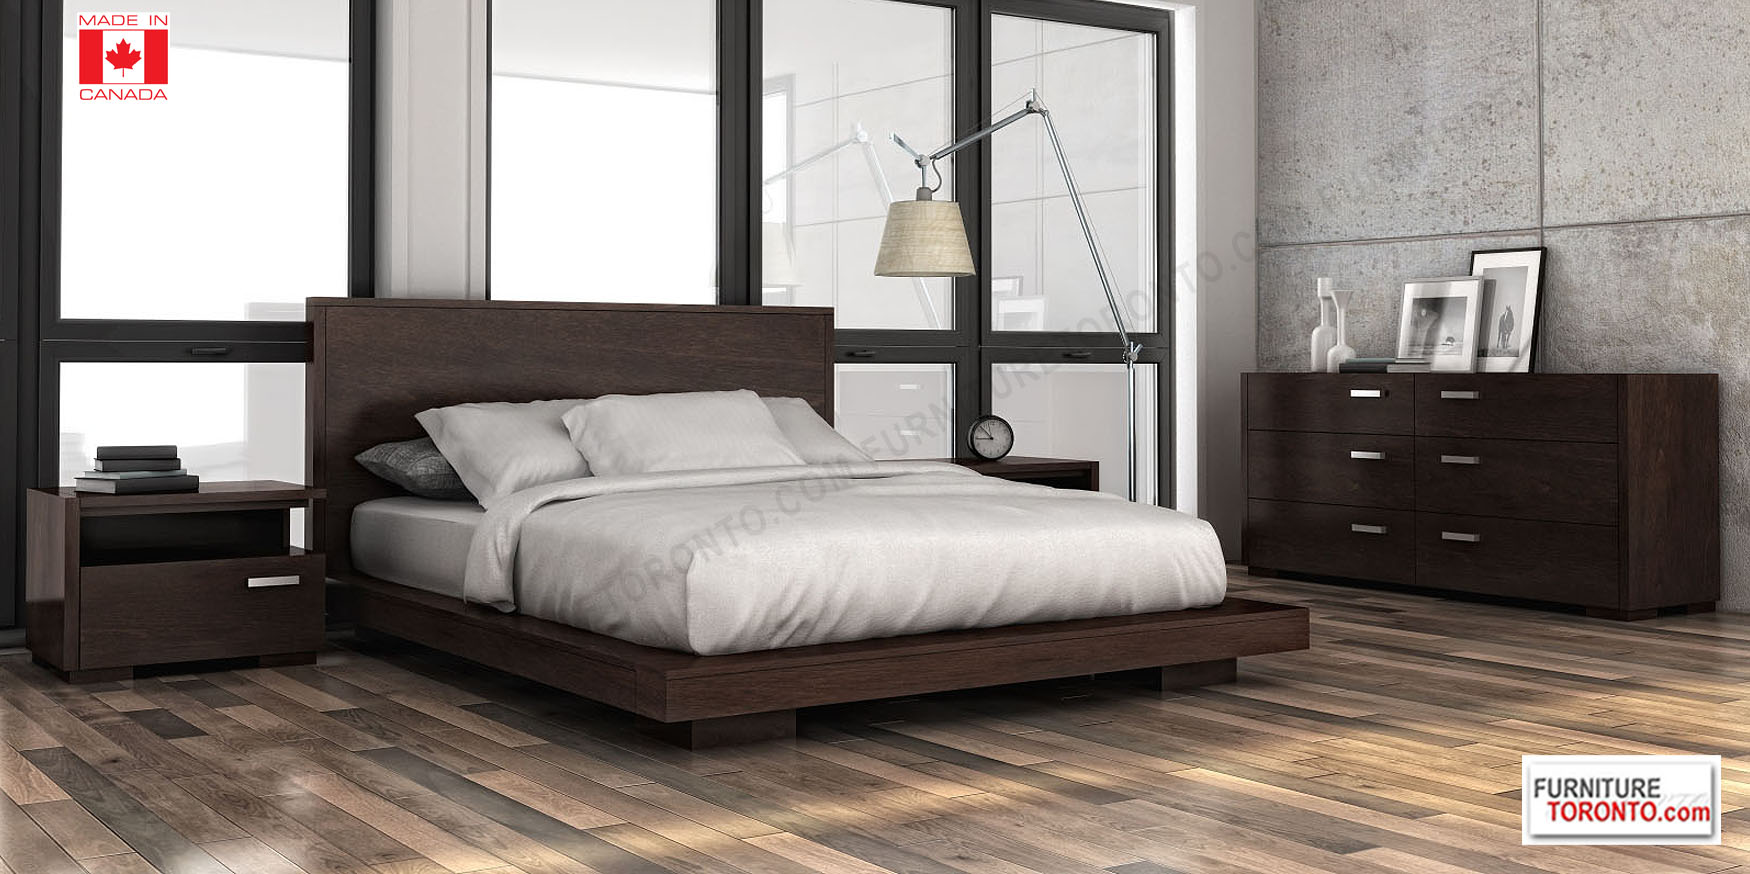 Furniture Toronto Official Website - Furniture Retail Store ...